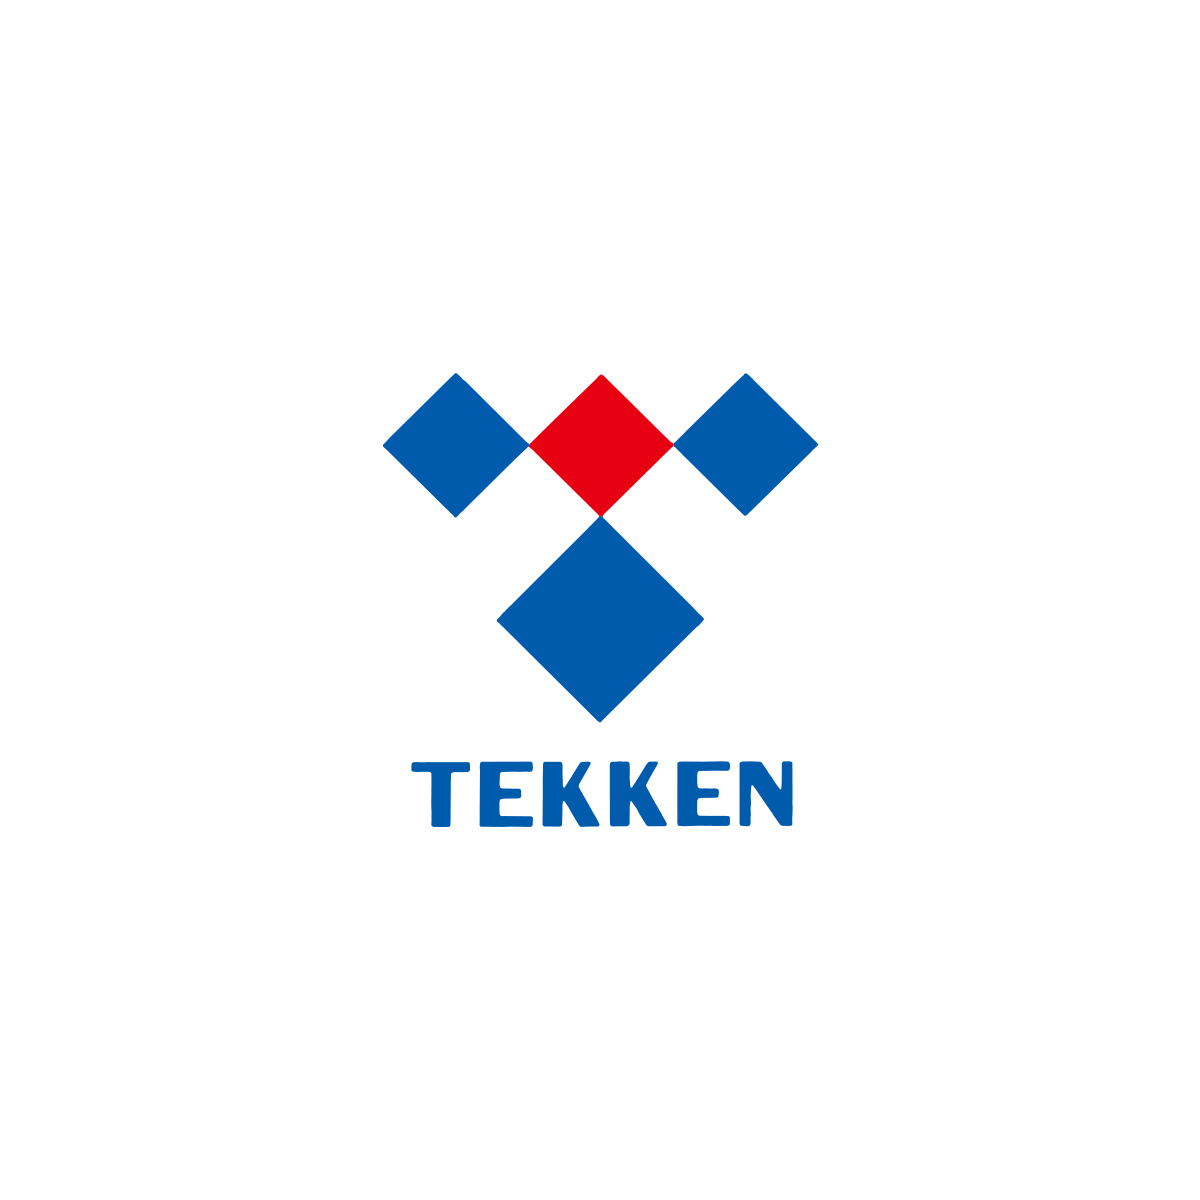 TEKKEN CORPORATION